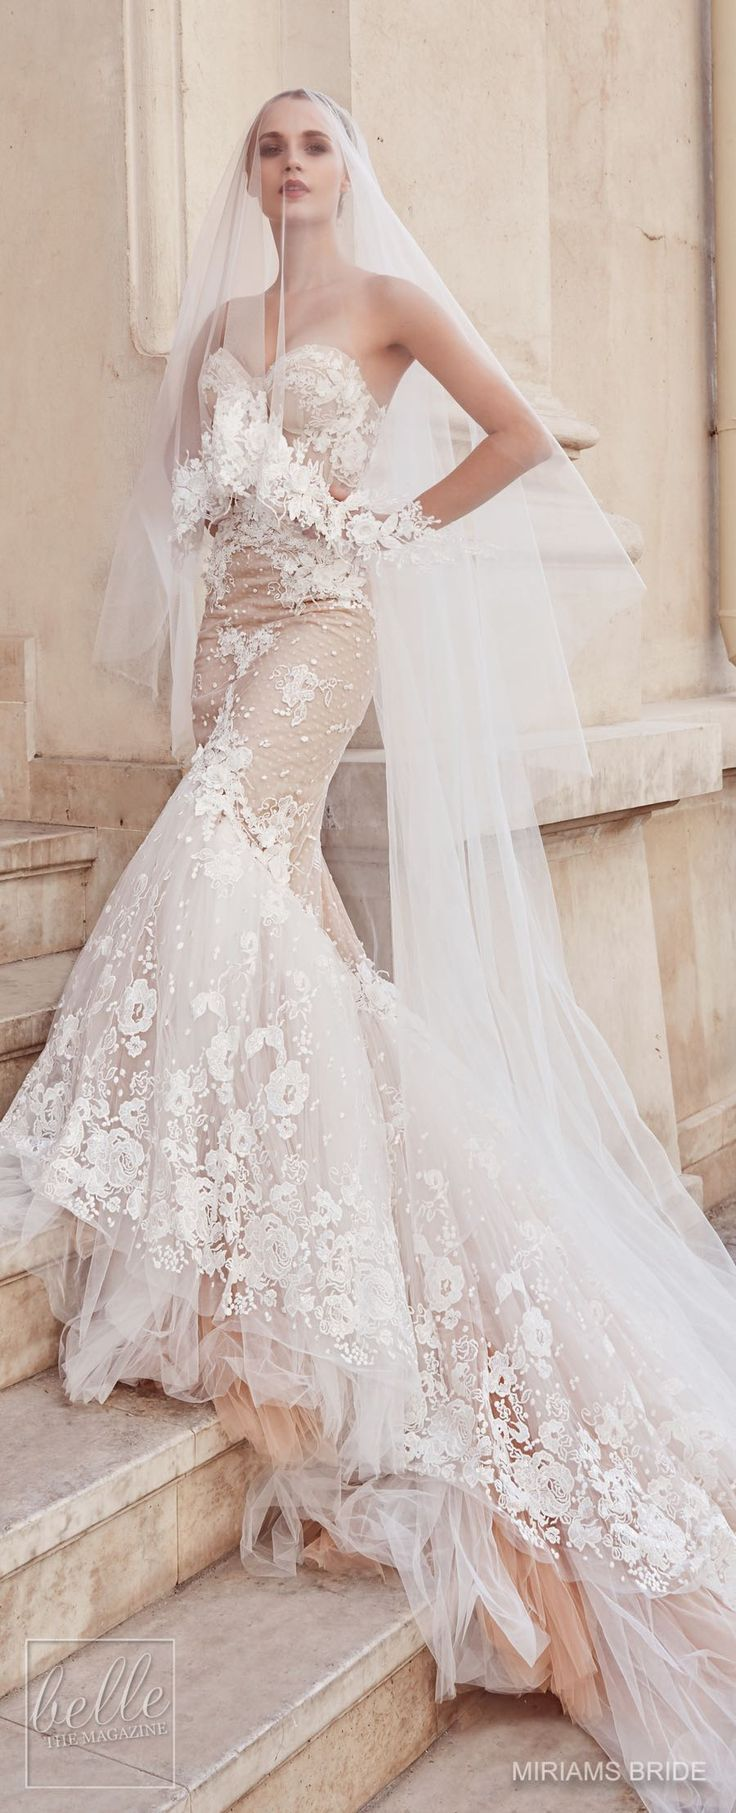 Wedding dresses by miriams bride collection wedding dress